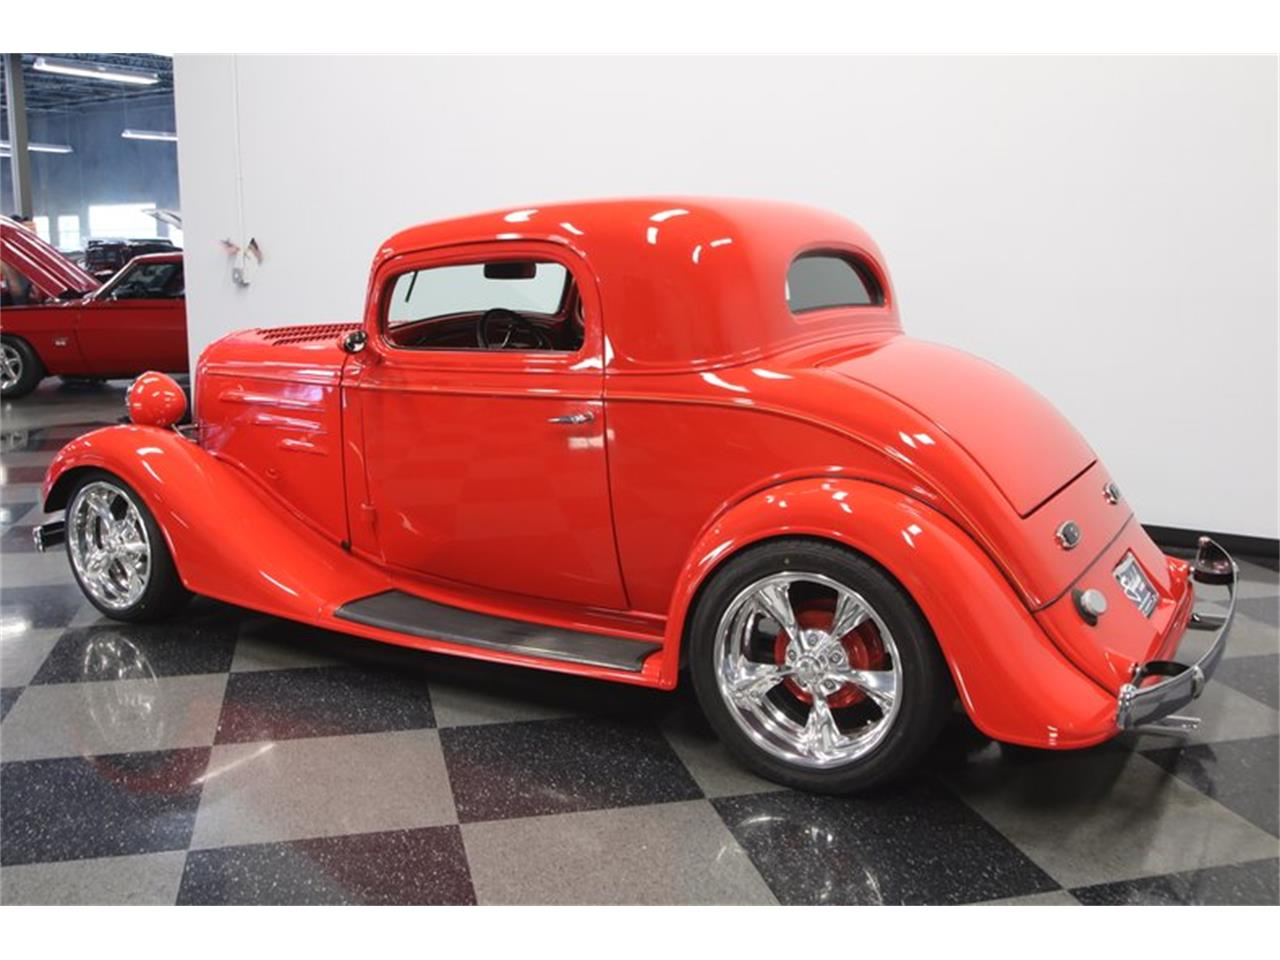 1934 Chevrolet 3-Window Coupe for sale in Lutz, FL – photo 8